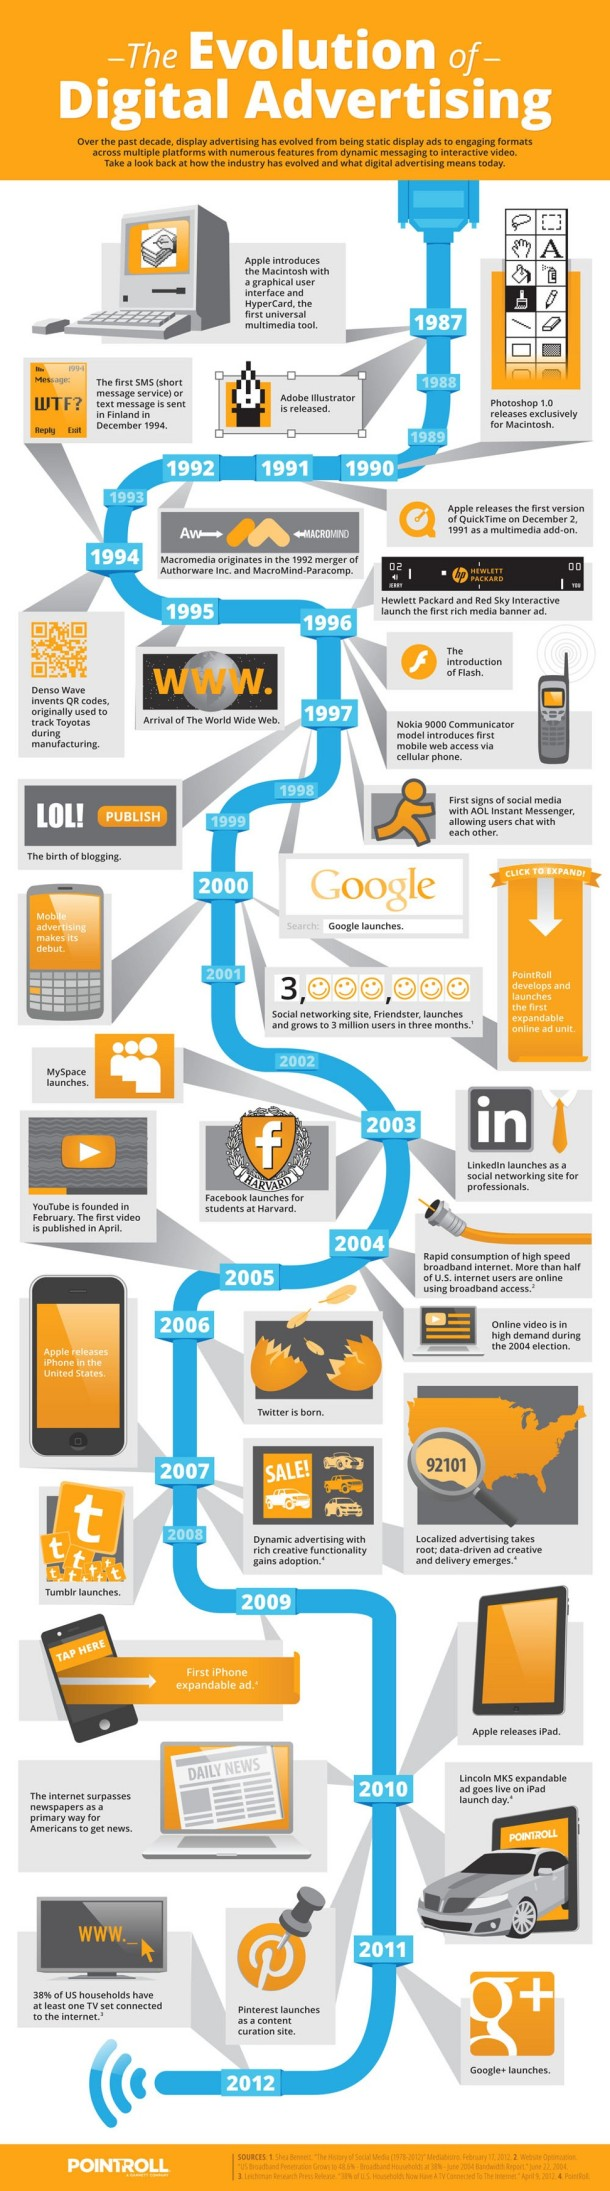 TheEvolutionofDigitalAdvertisingINFOGRAPHIC_506375a26dc31